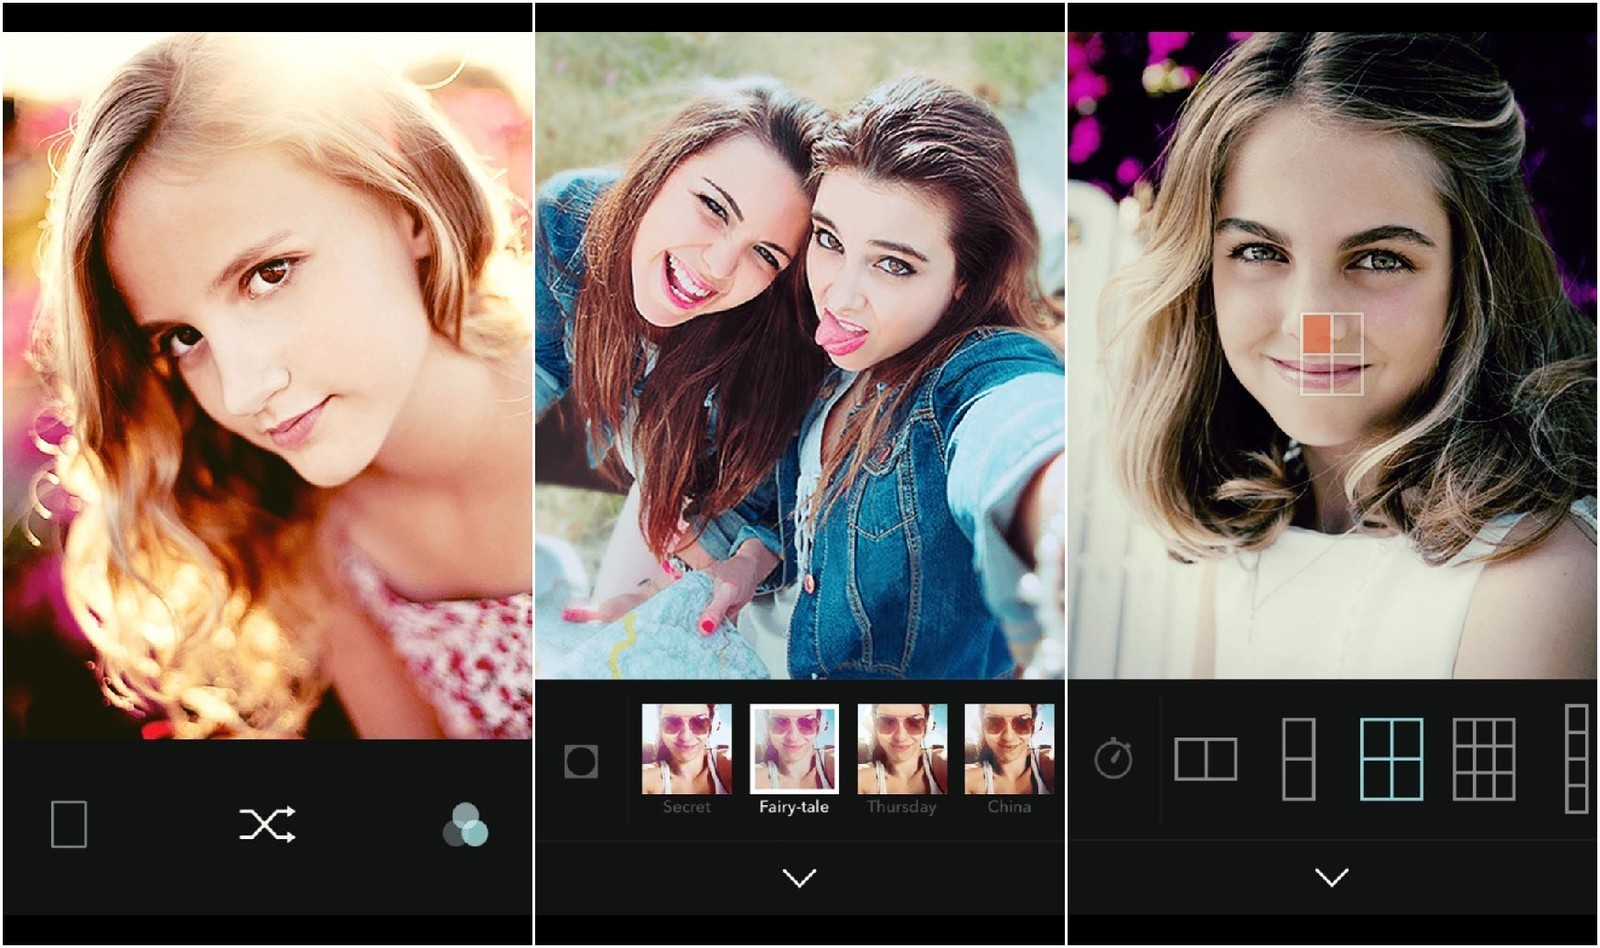 Download B612 App And Capture Unbelievable Shots On Android And iOS